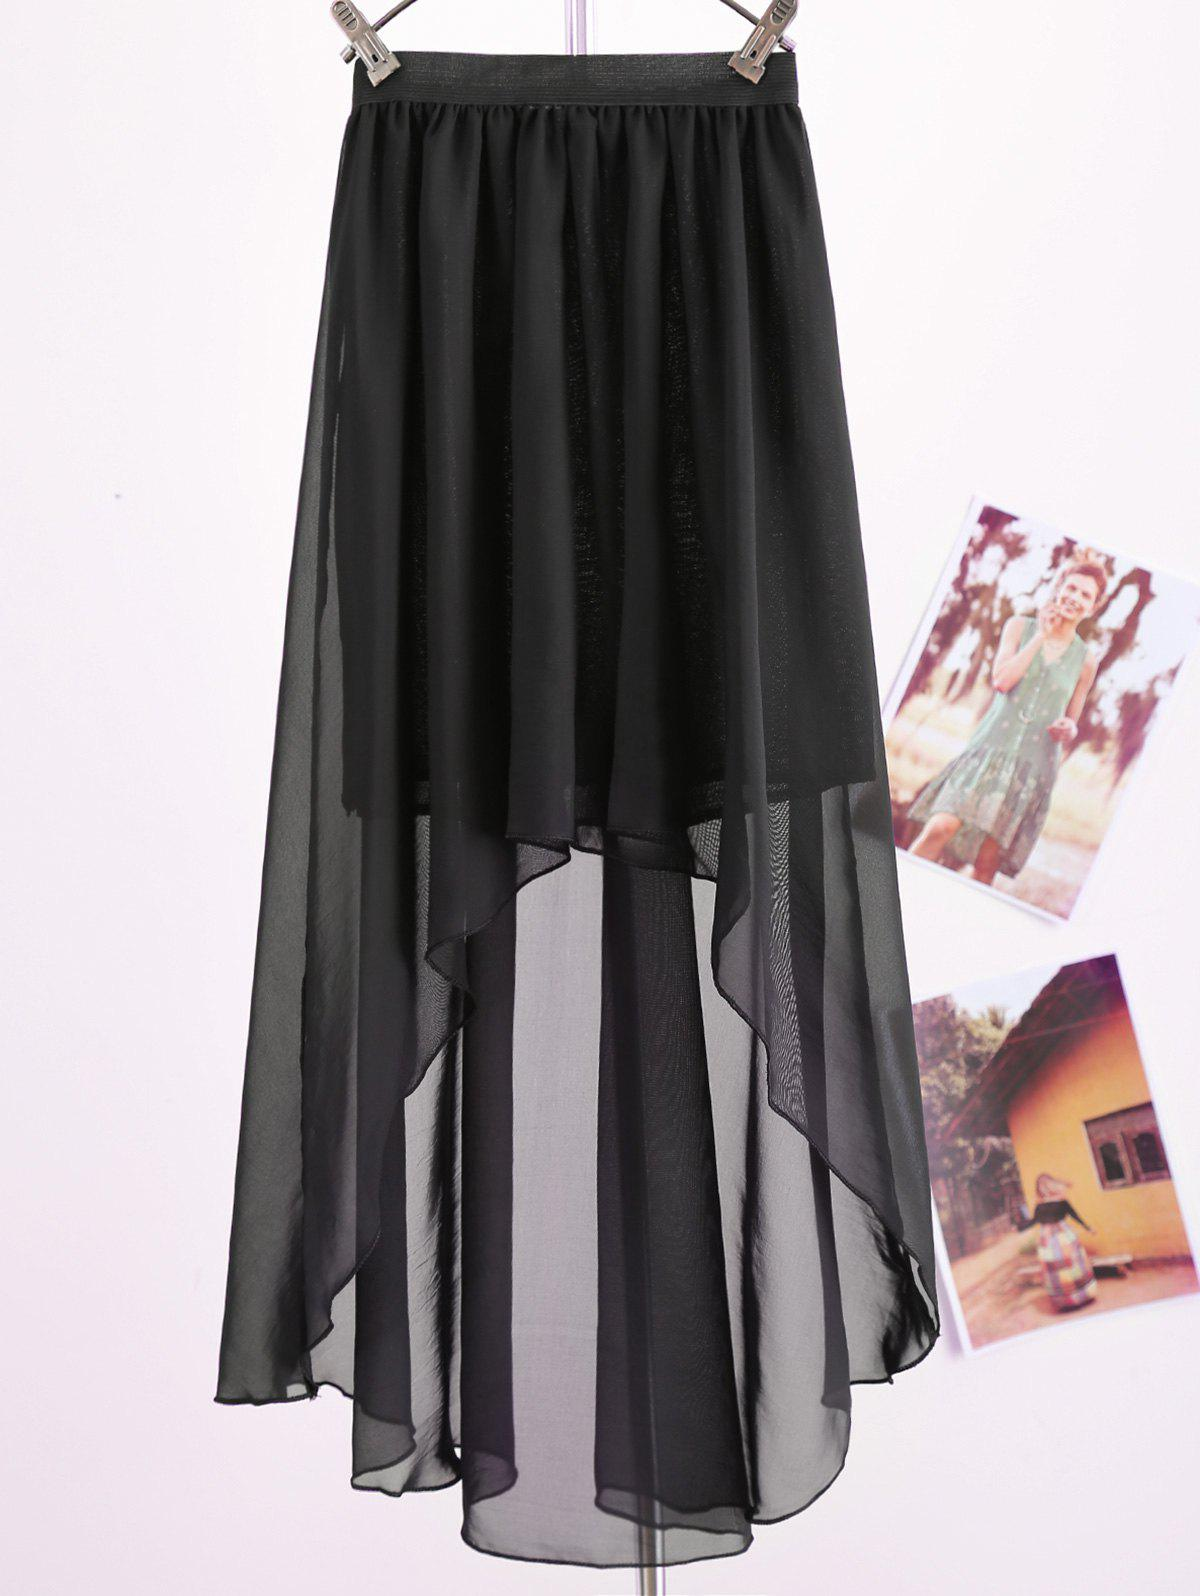 Women's Chiffon Pleated Retro Asymmetrical Swallow Tail Short Elastic Waist Skirt - ONE SIZE BLACK